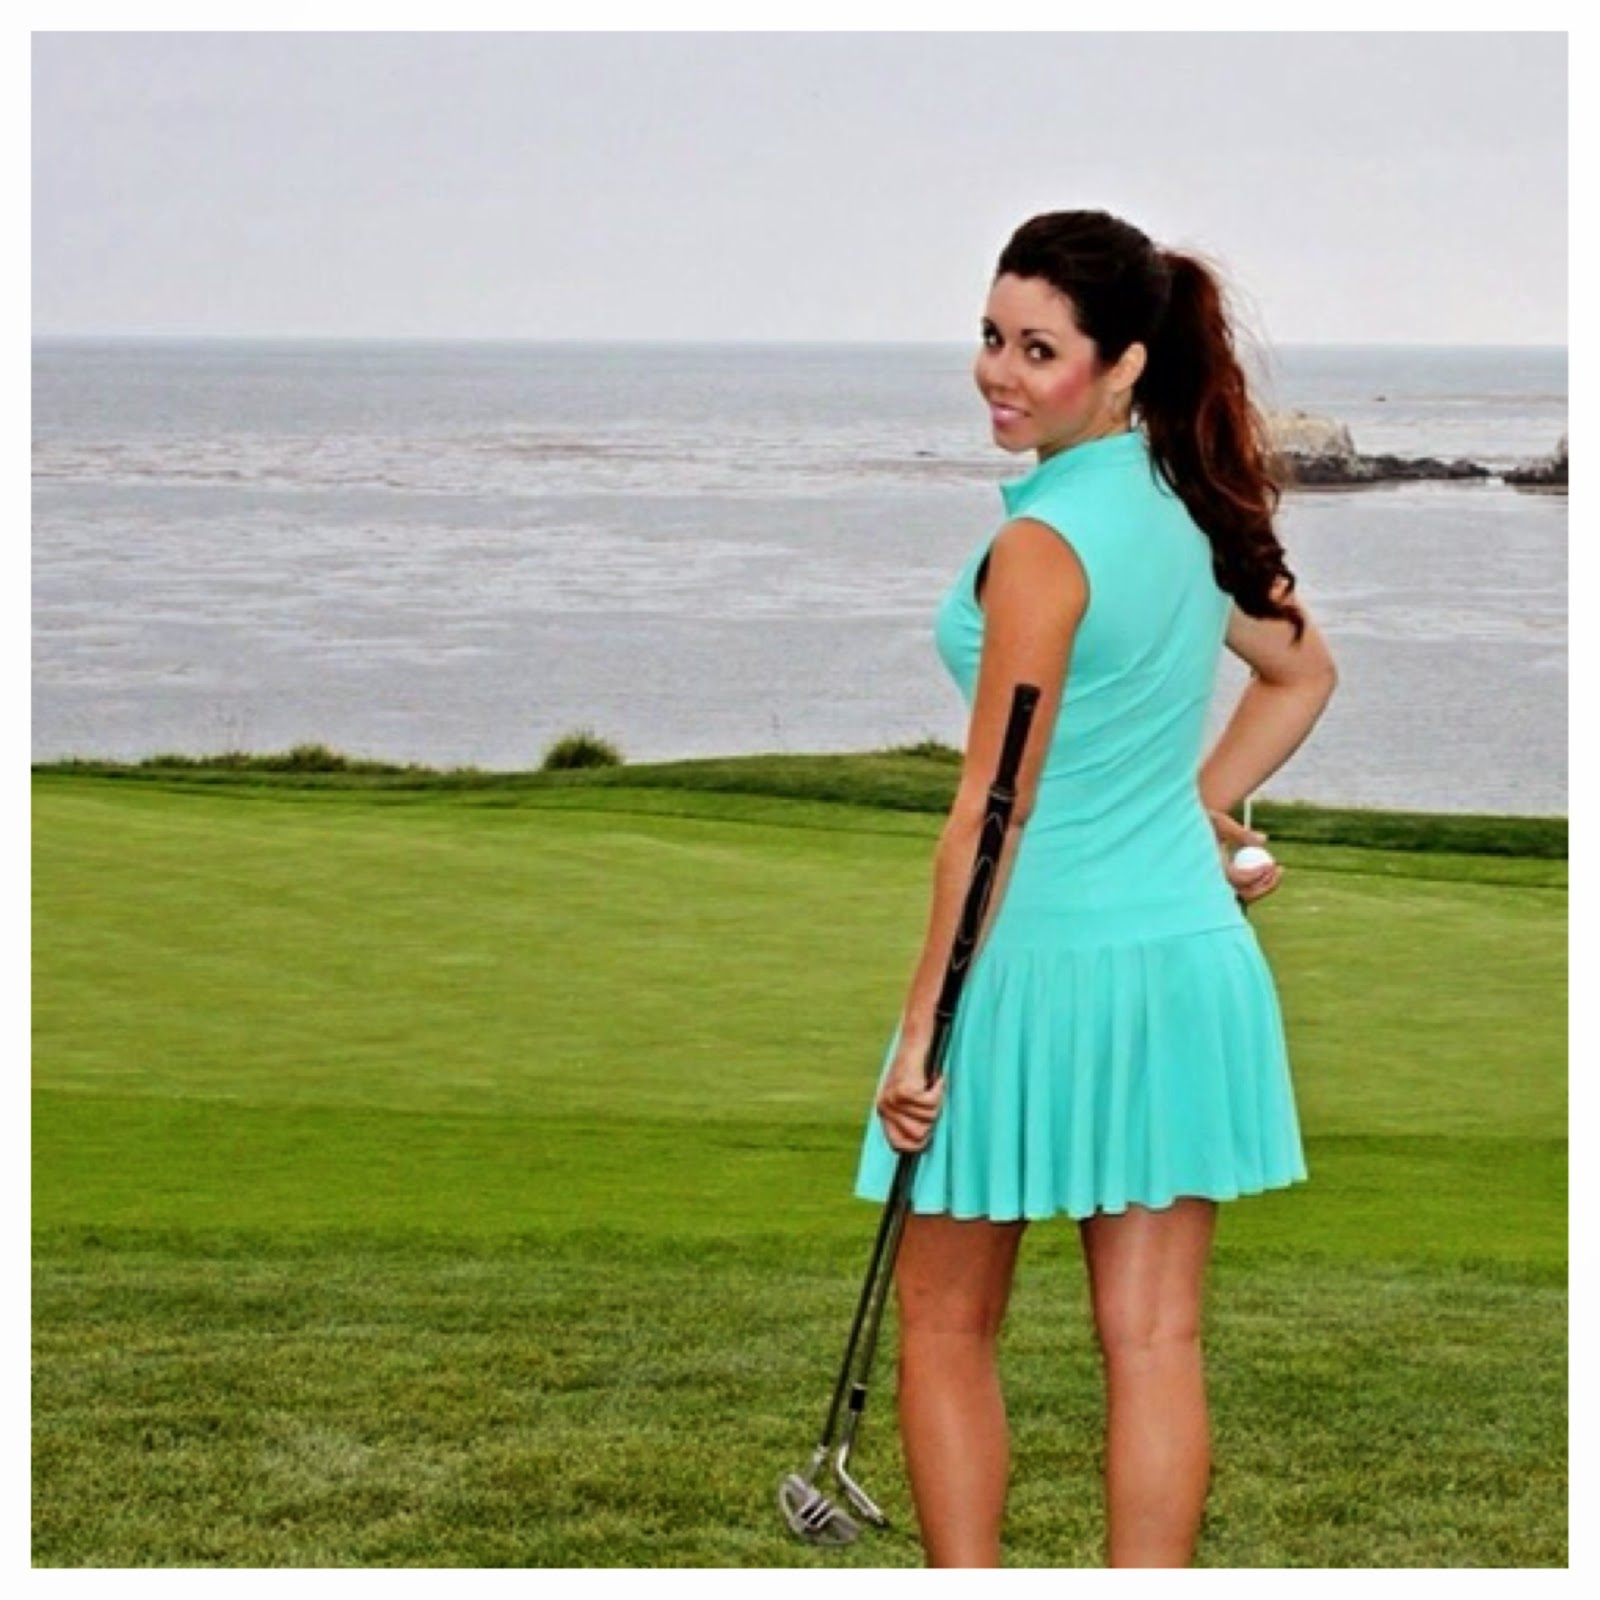 Cute Women's Golf Clothing Girls Golf in Style at Pebble